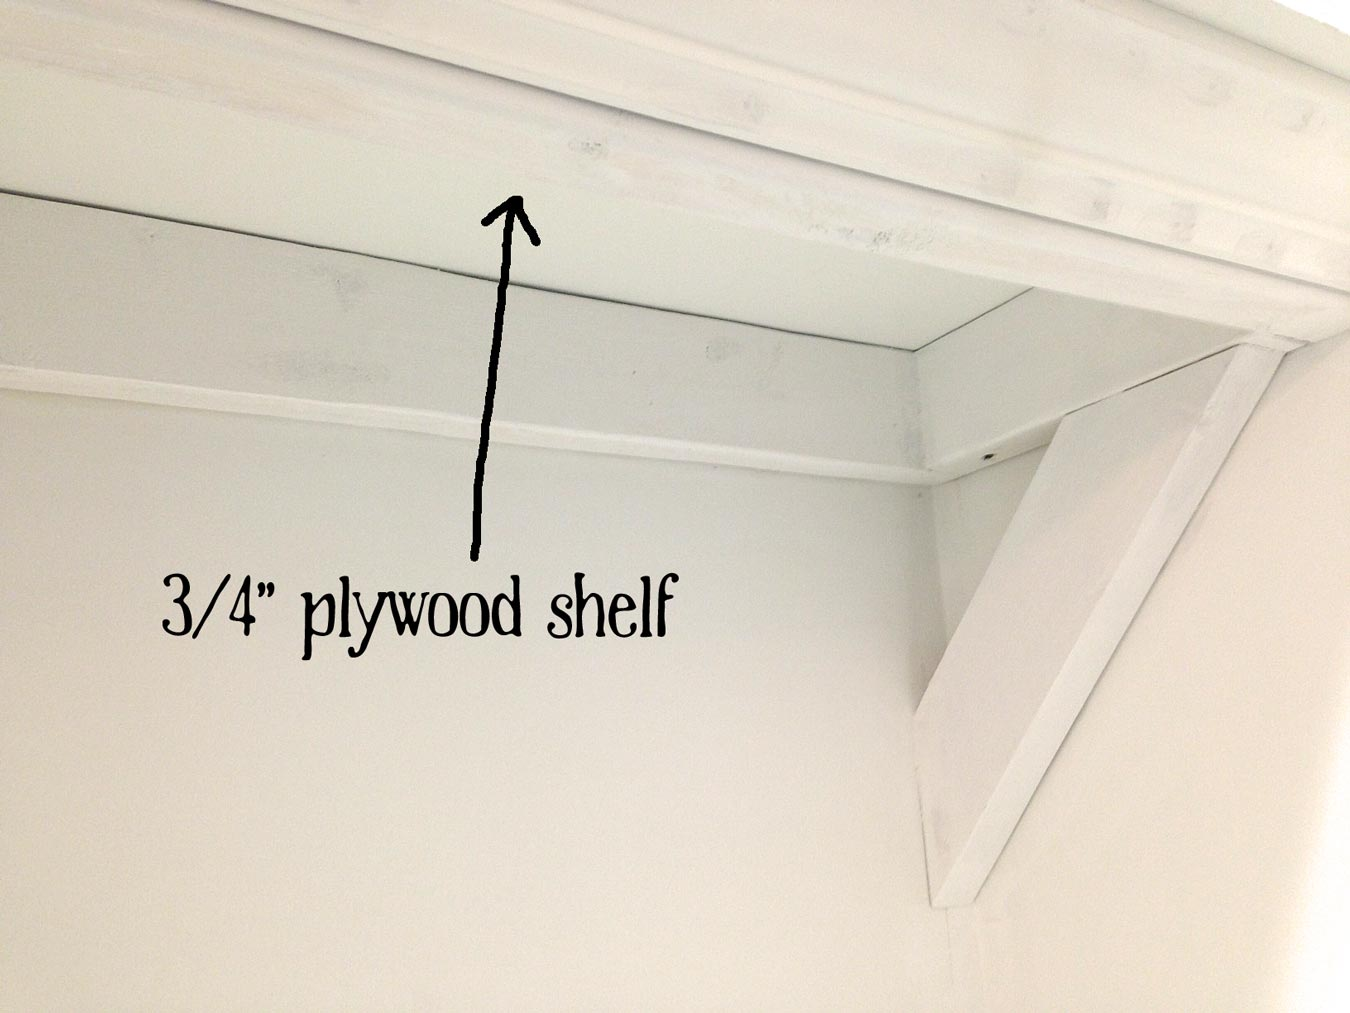 Plywood-shelf